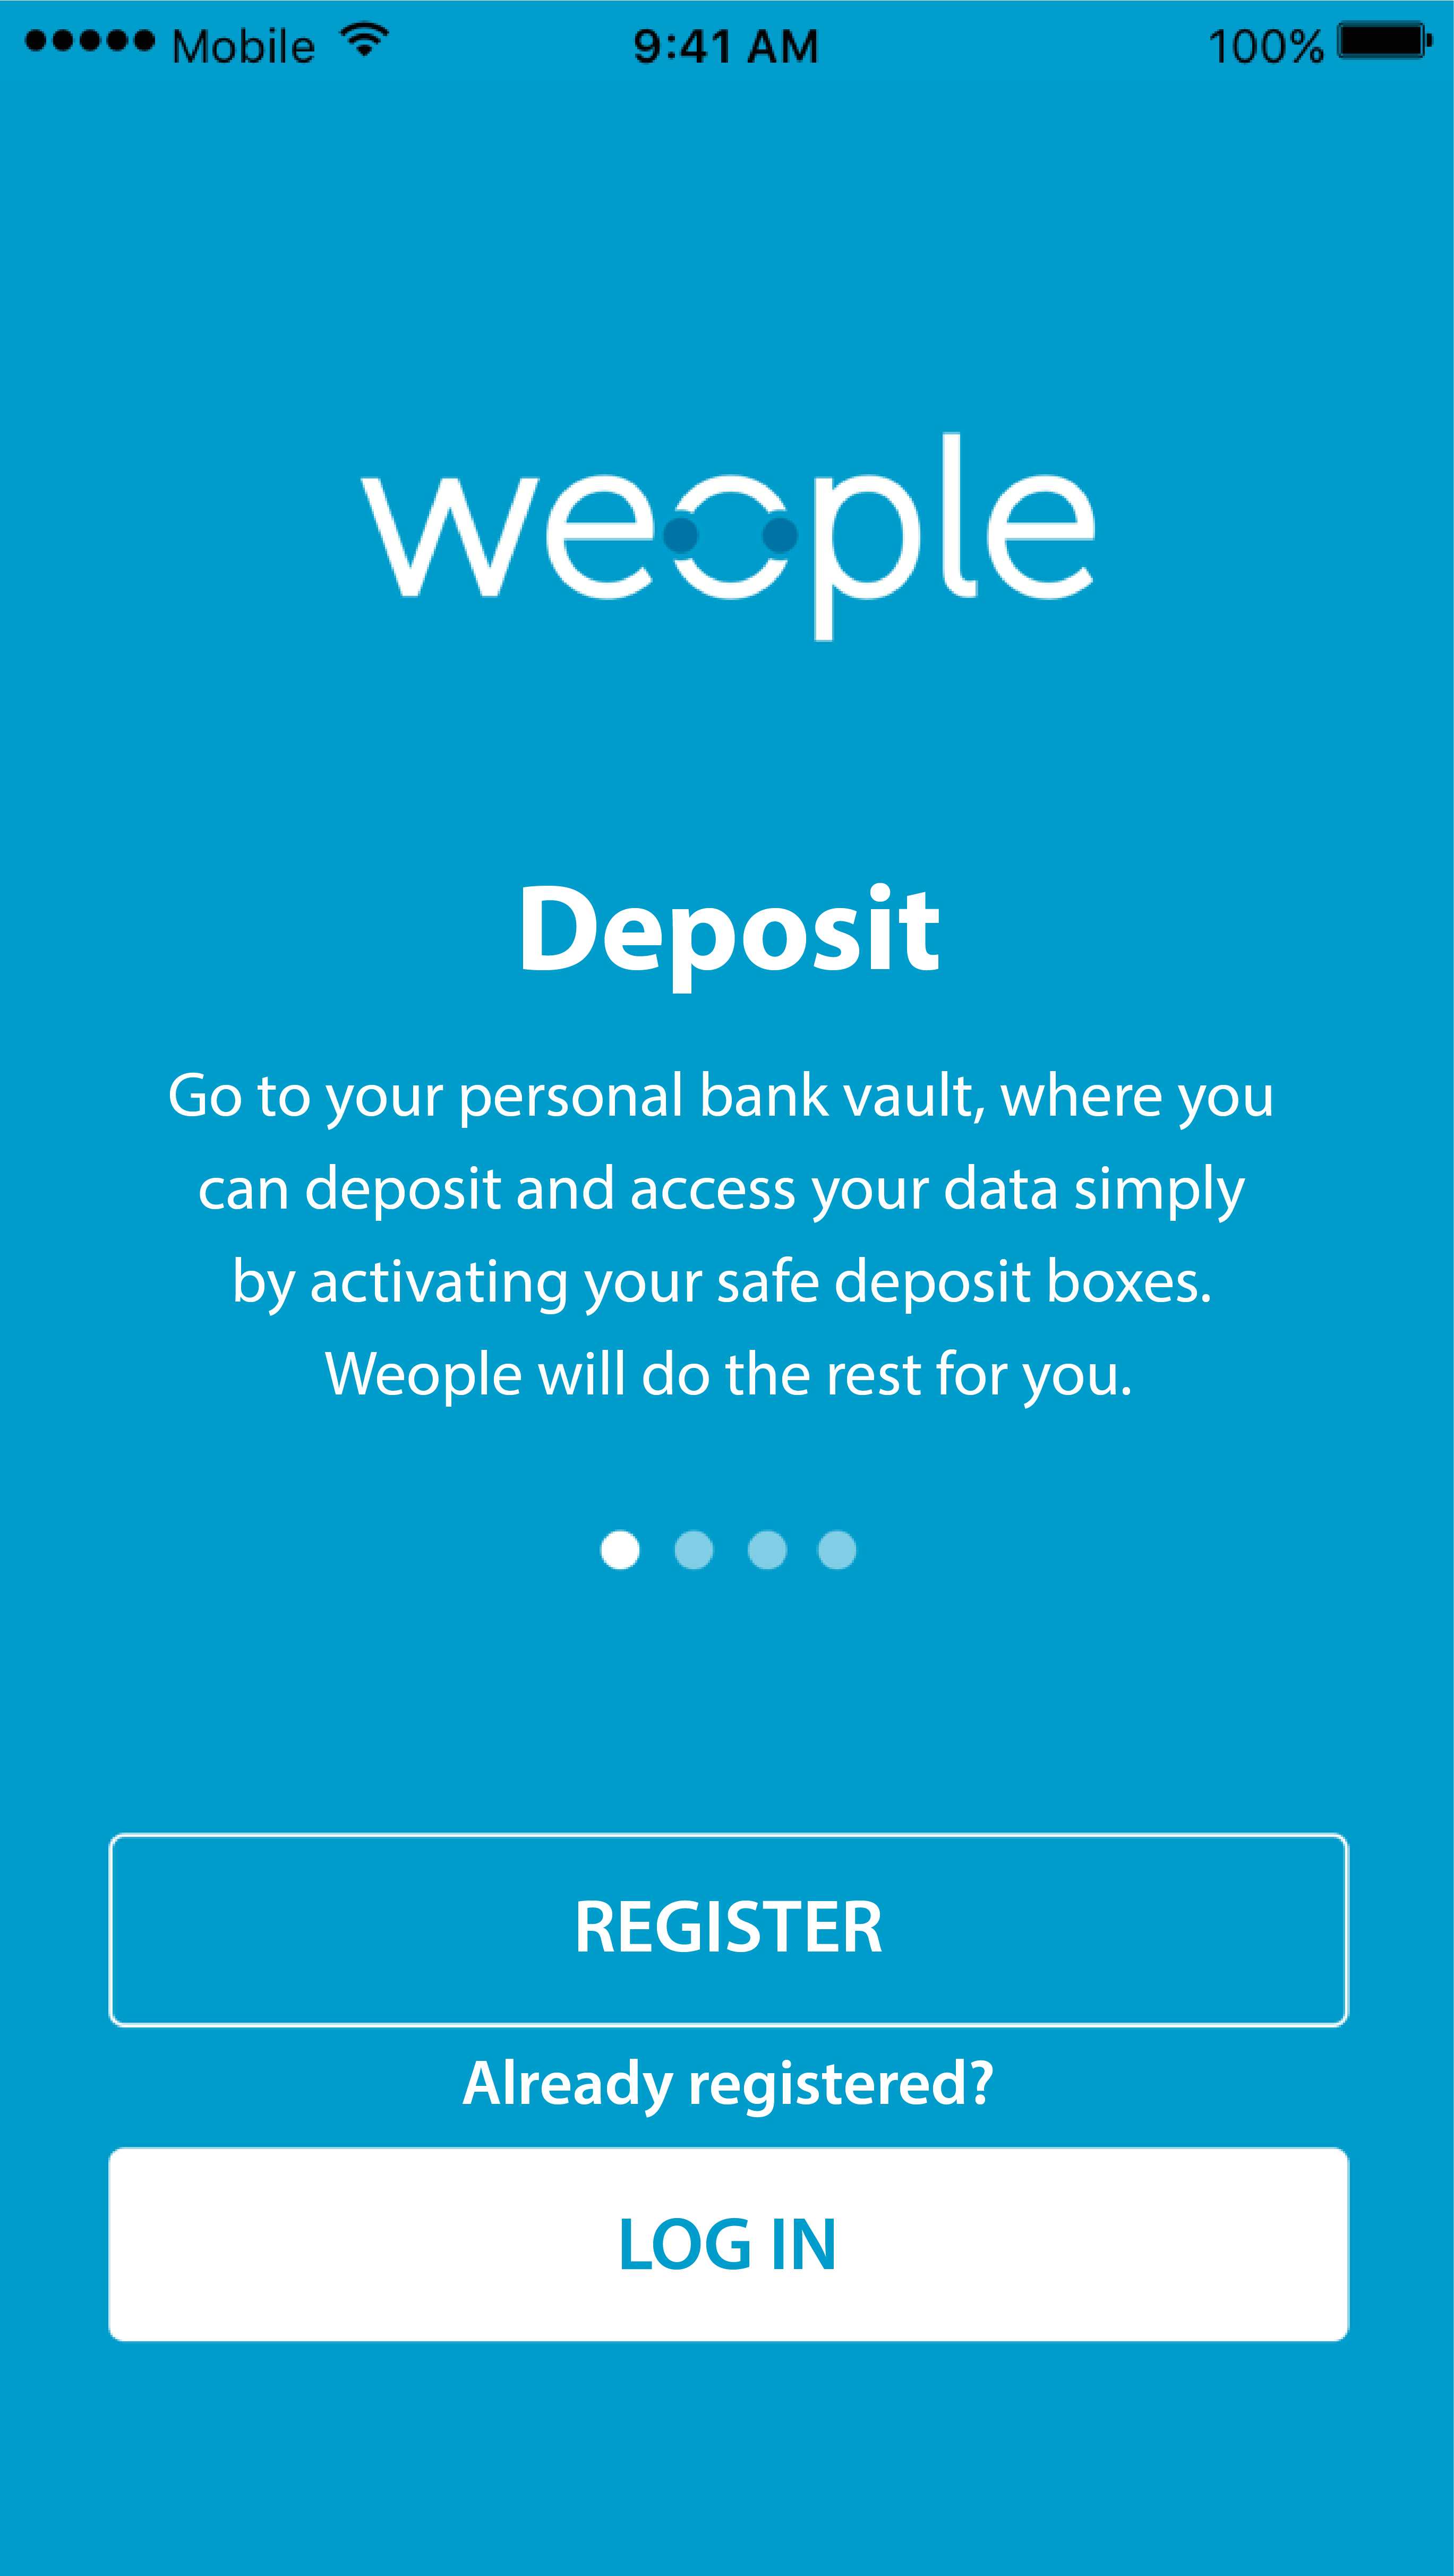 Weople, the app to protect and gain from your personal data